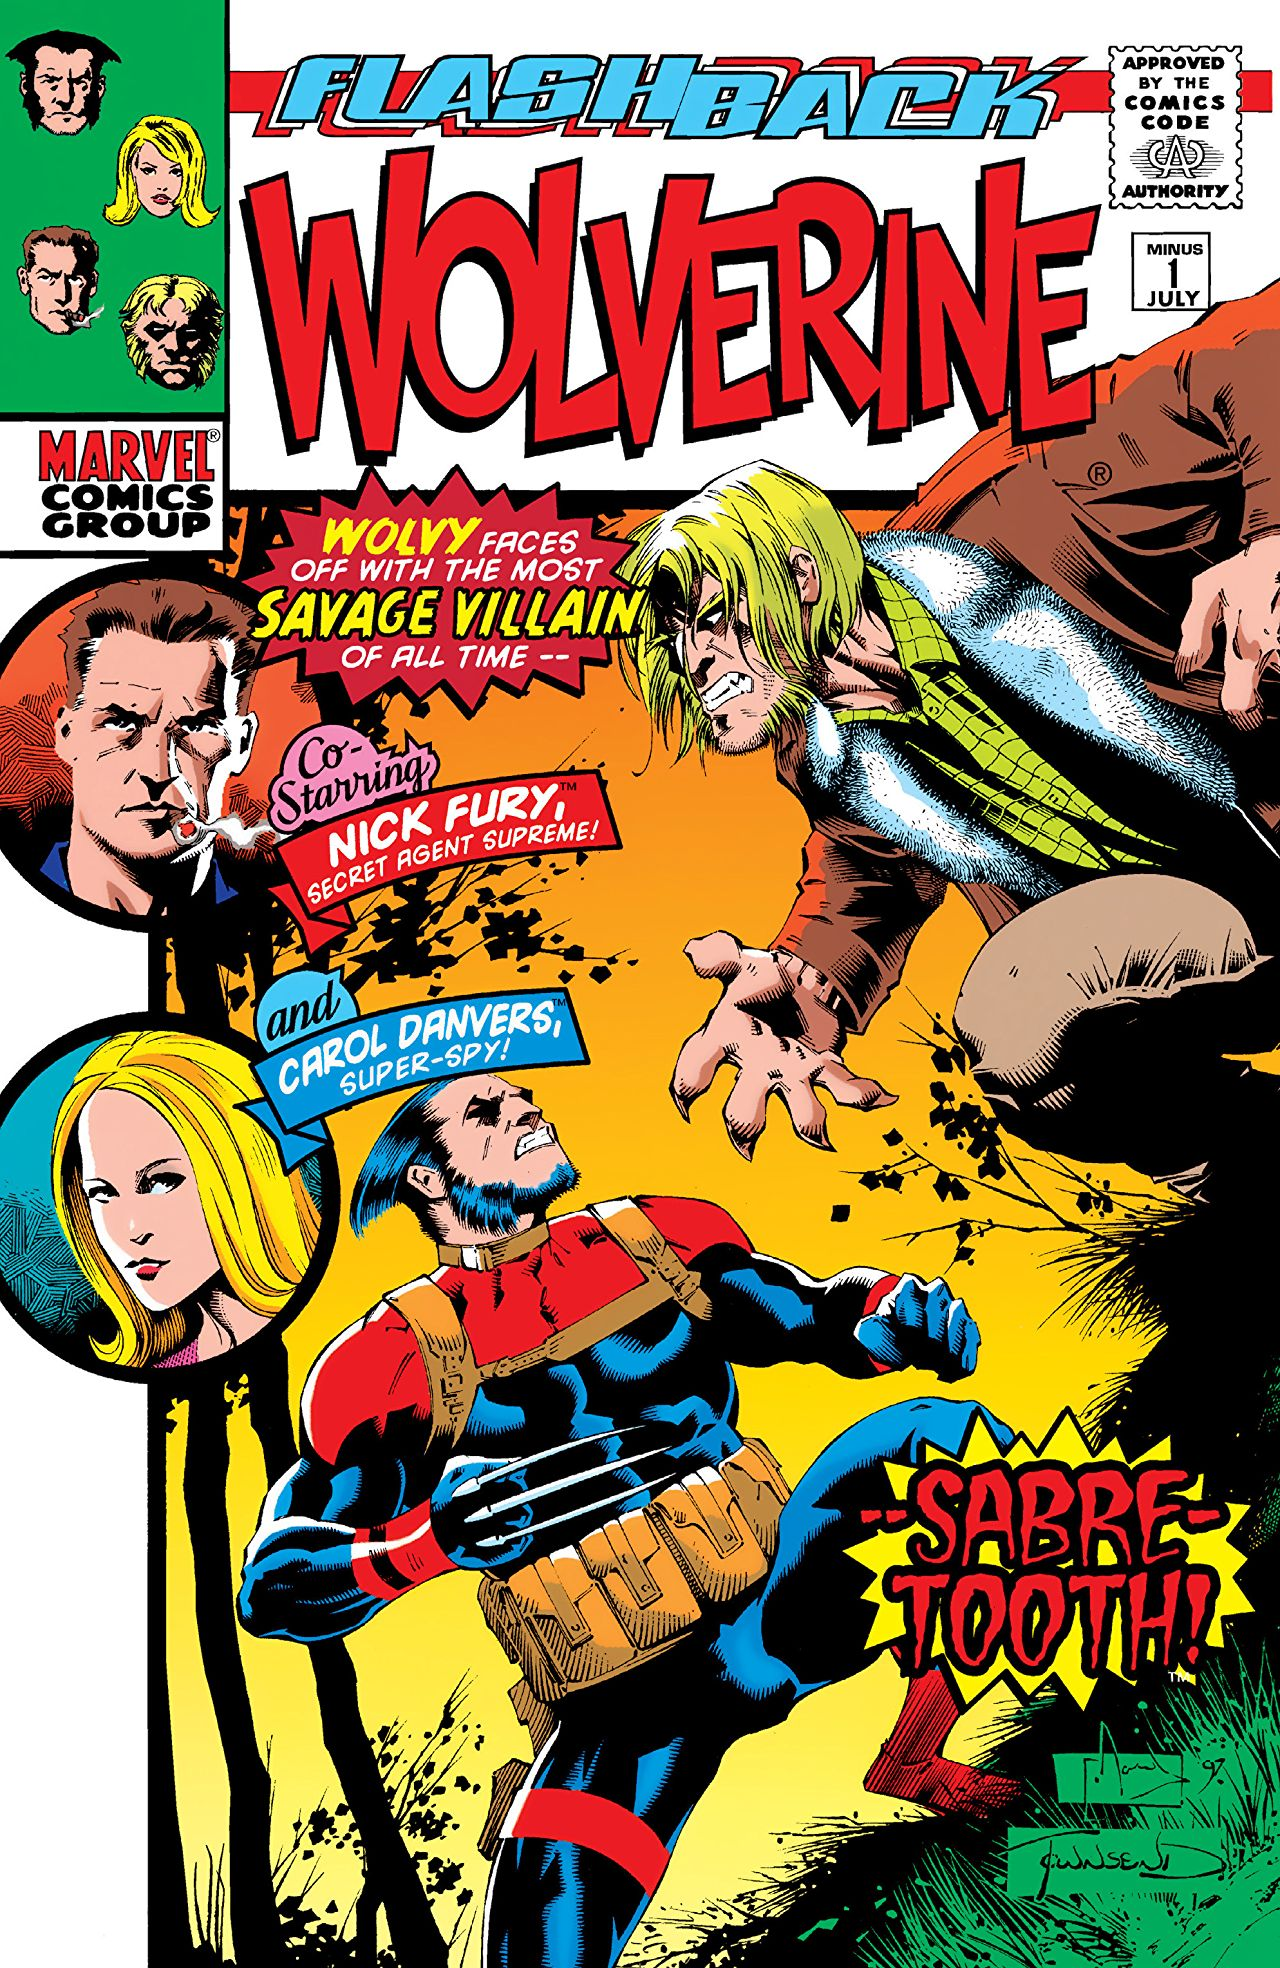 Image result for Flashback: Wolverine #1